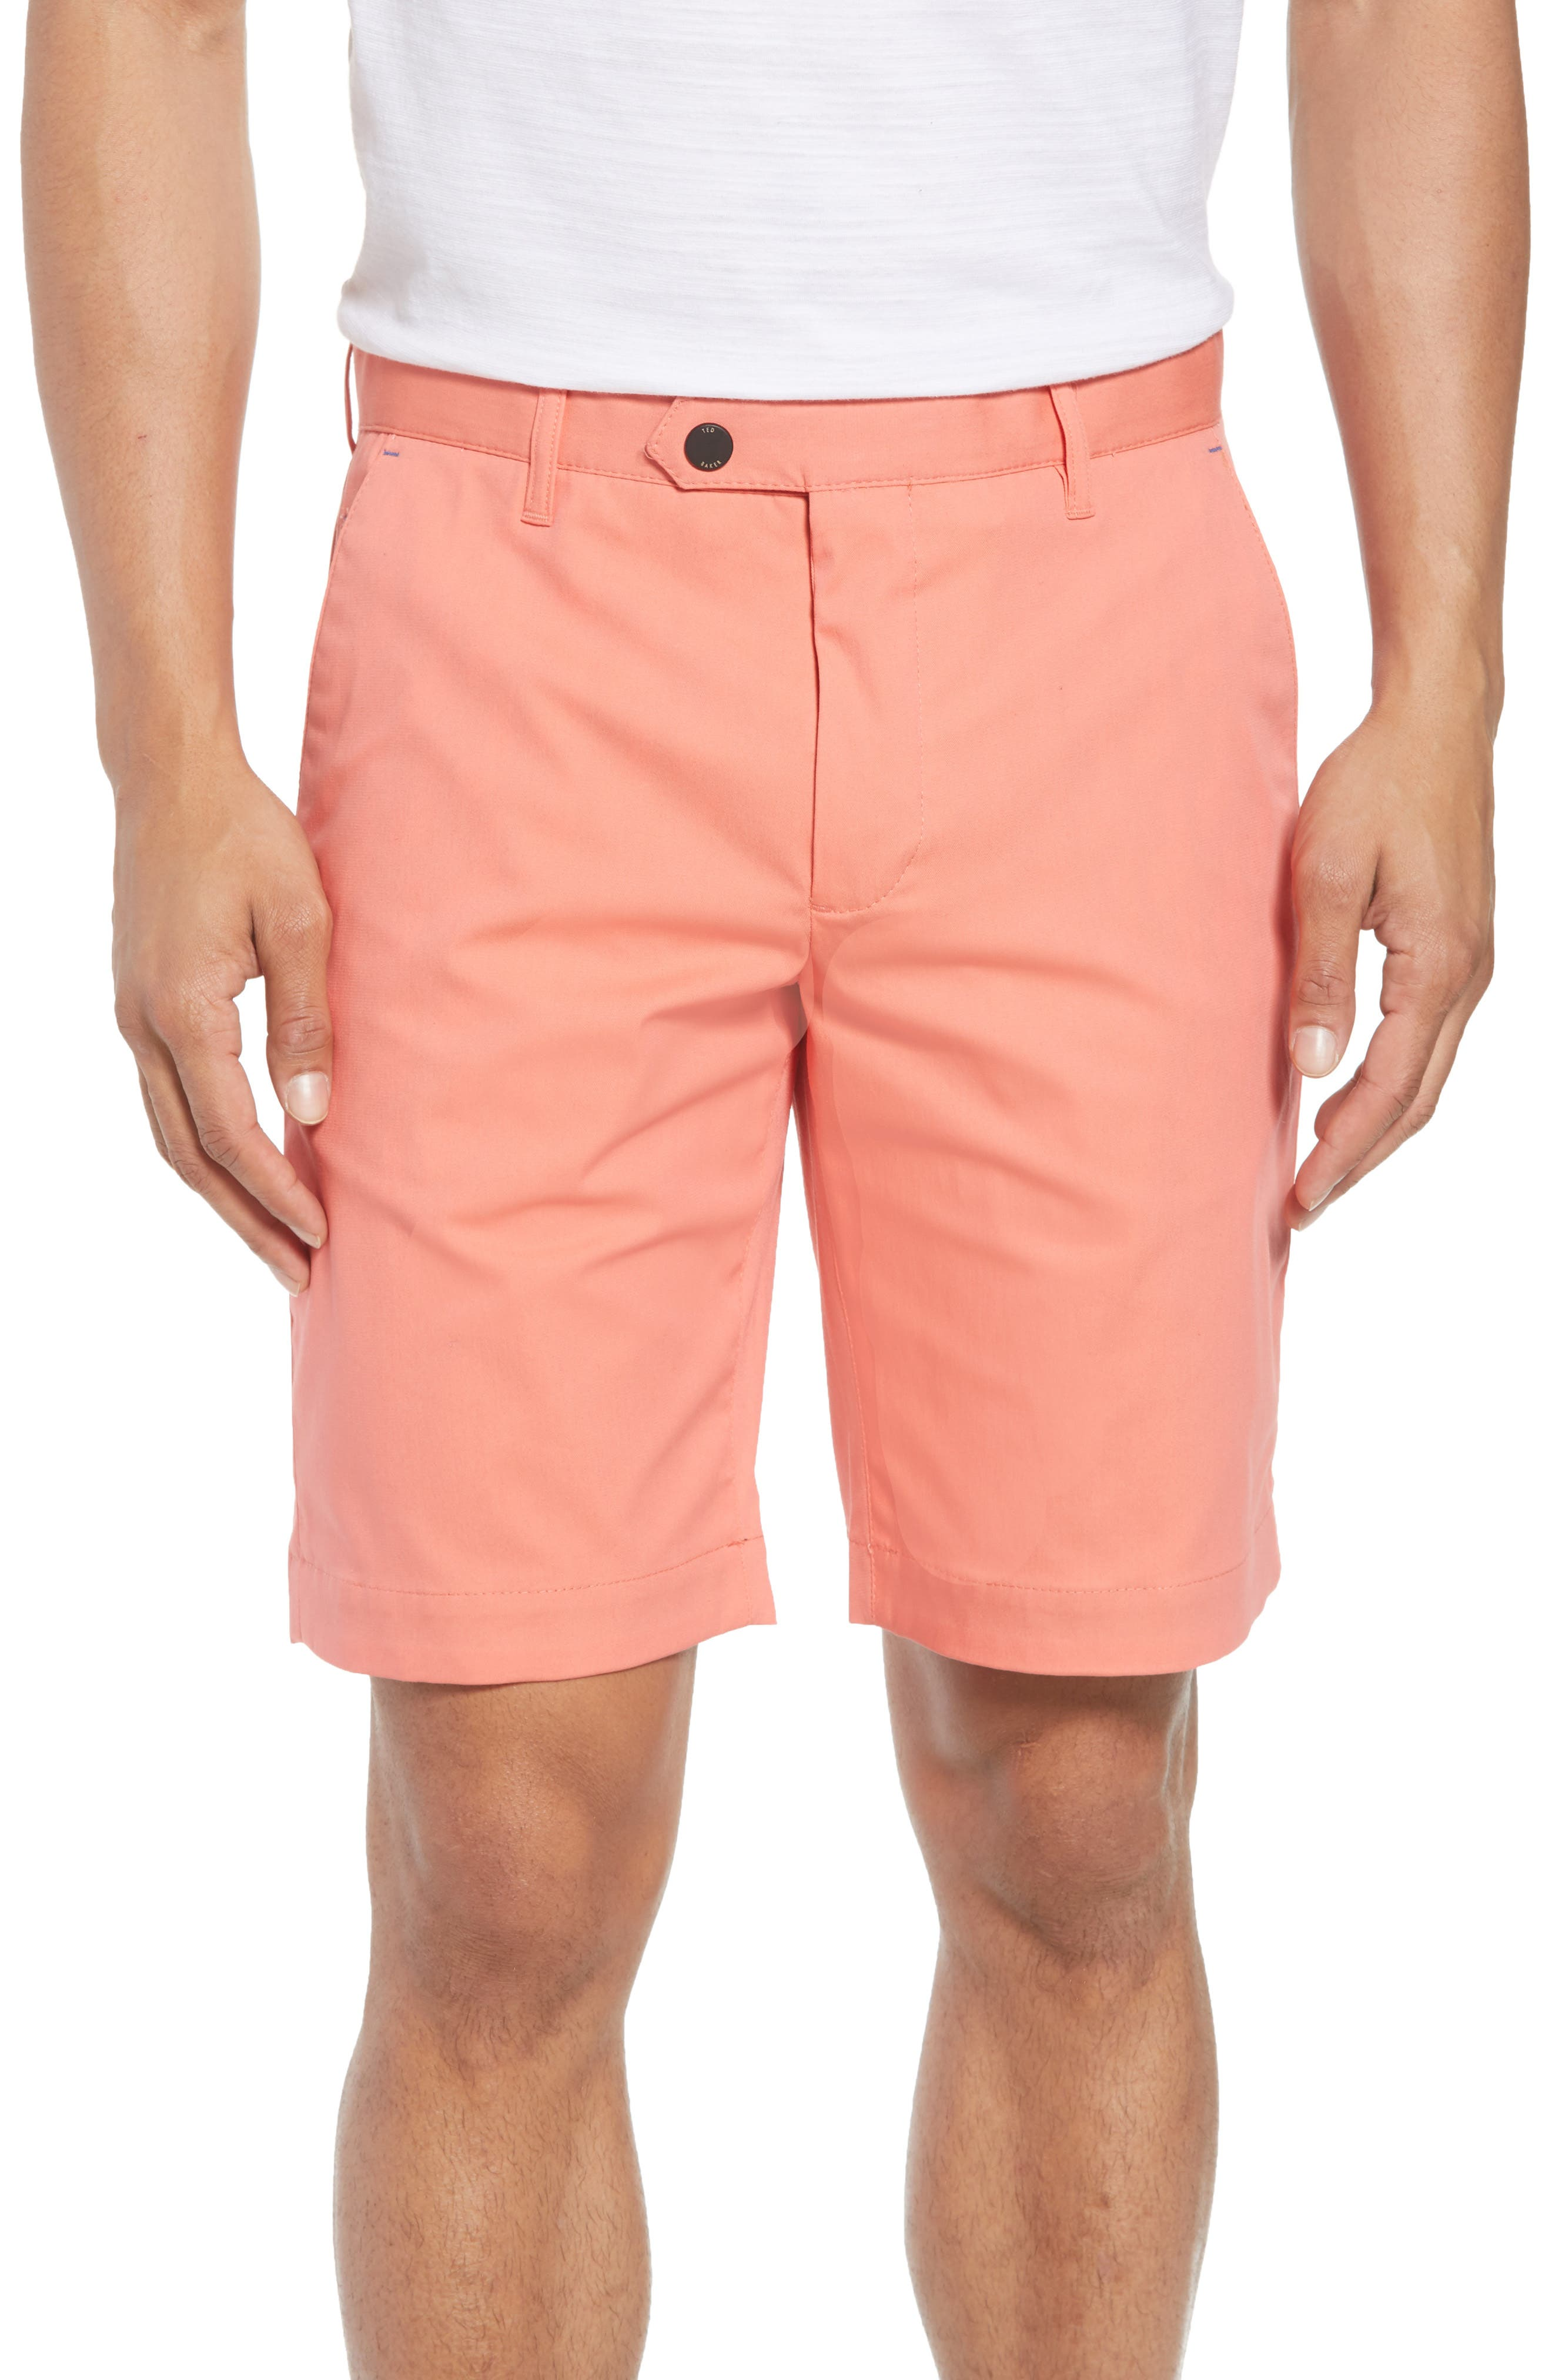 Twopar Flat Front Shorts,                         Main,                         color, Coral